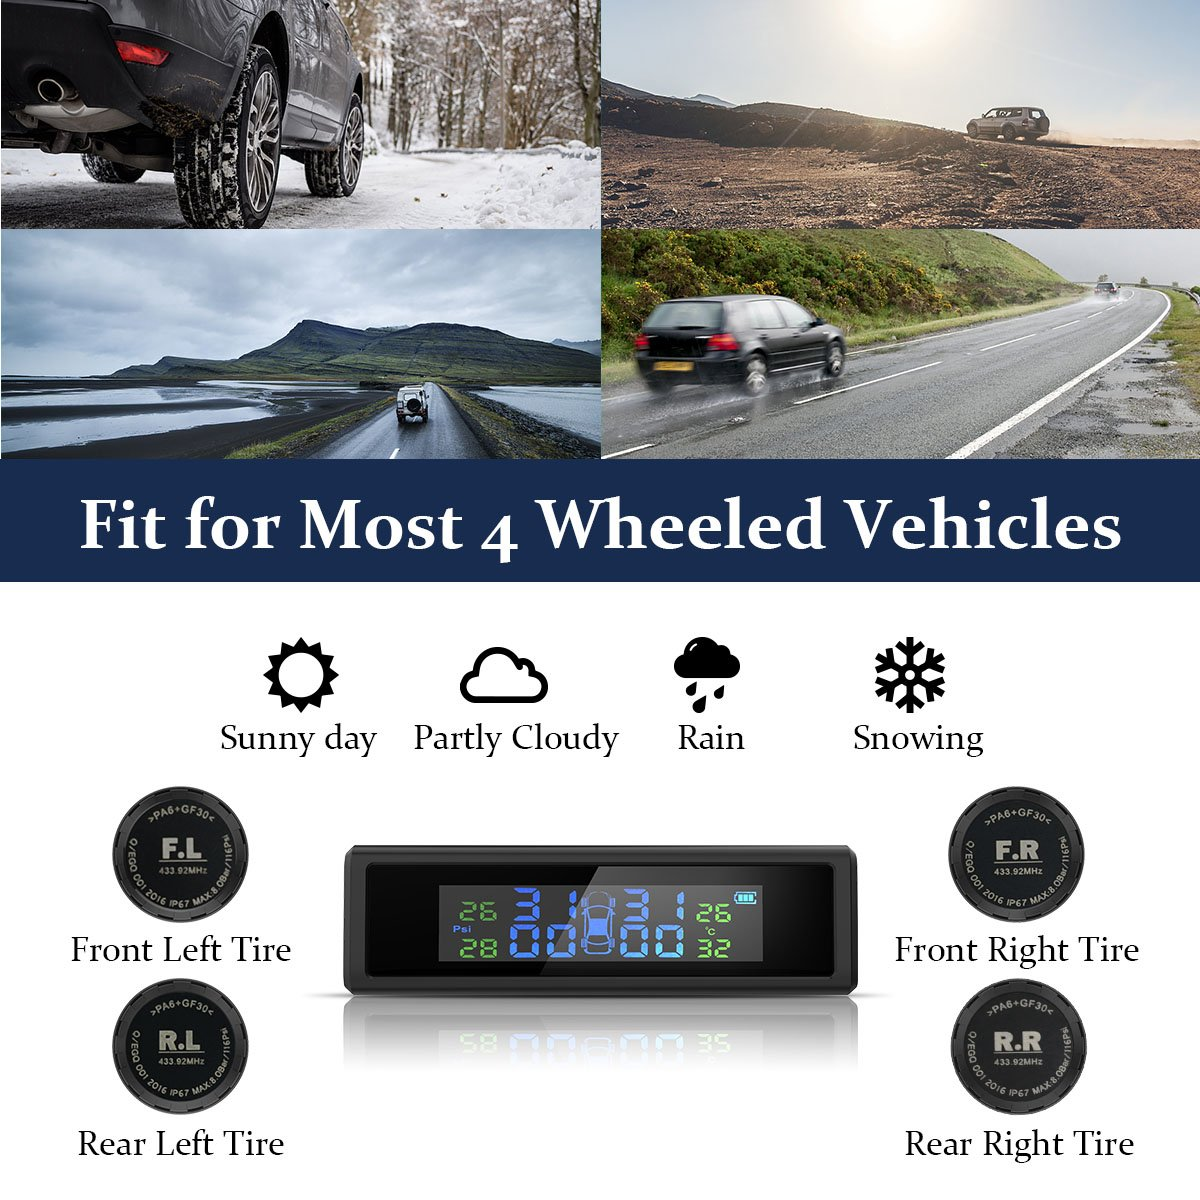 HiGoing Tire Pressure Monitoring System, Solar Wireless TPMS Built-in 450mAh Battery, 4 External Sensors (0-8.0 Bar/0-116 Psi, 49-85℉/65-85℃), 6 Alarms Real-time High Monitor Temperature & Pressure by HiGoing (Image #5)